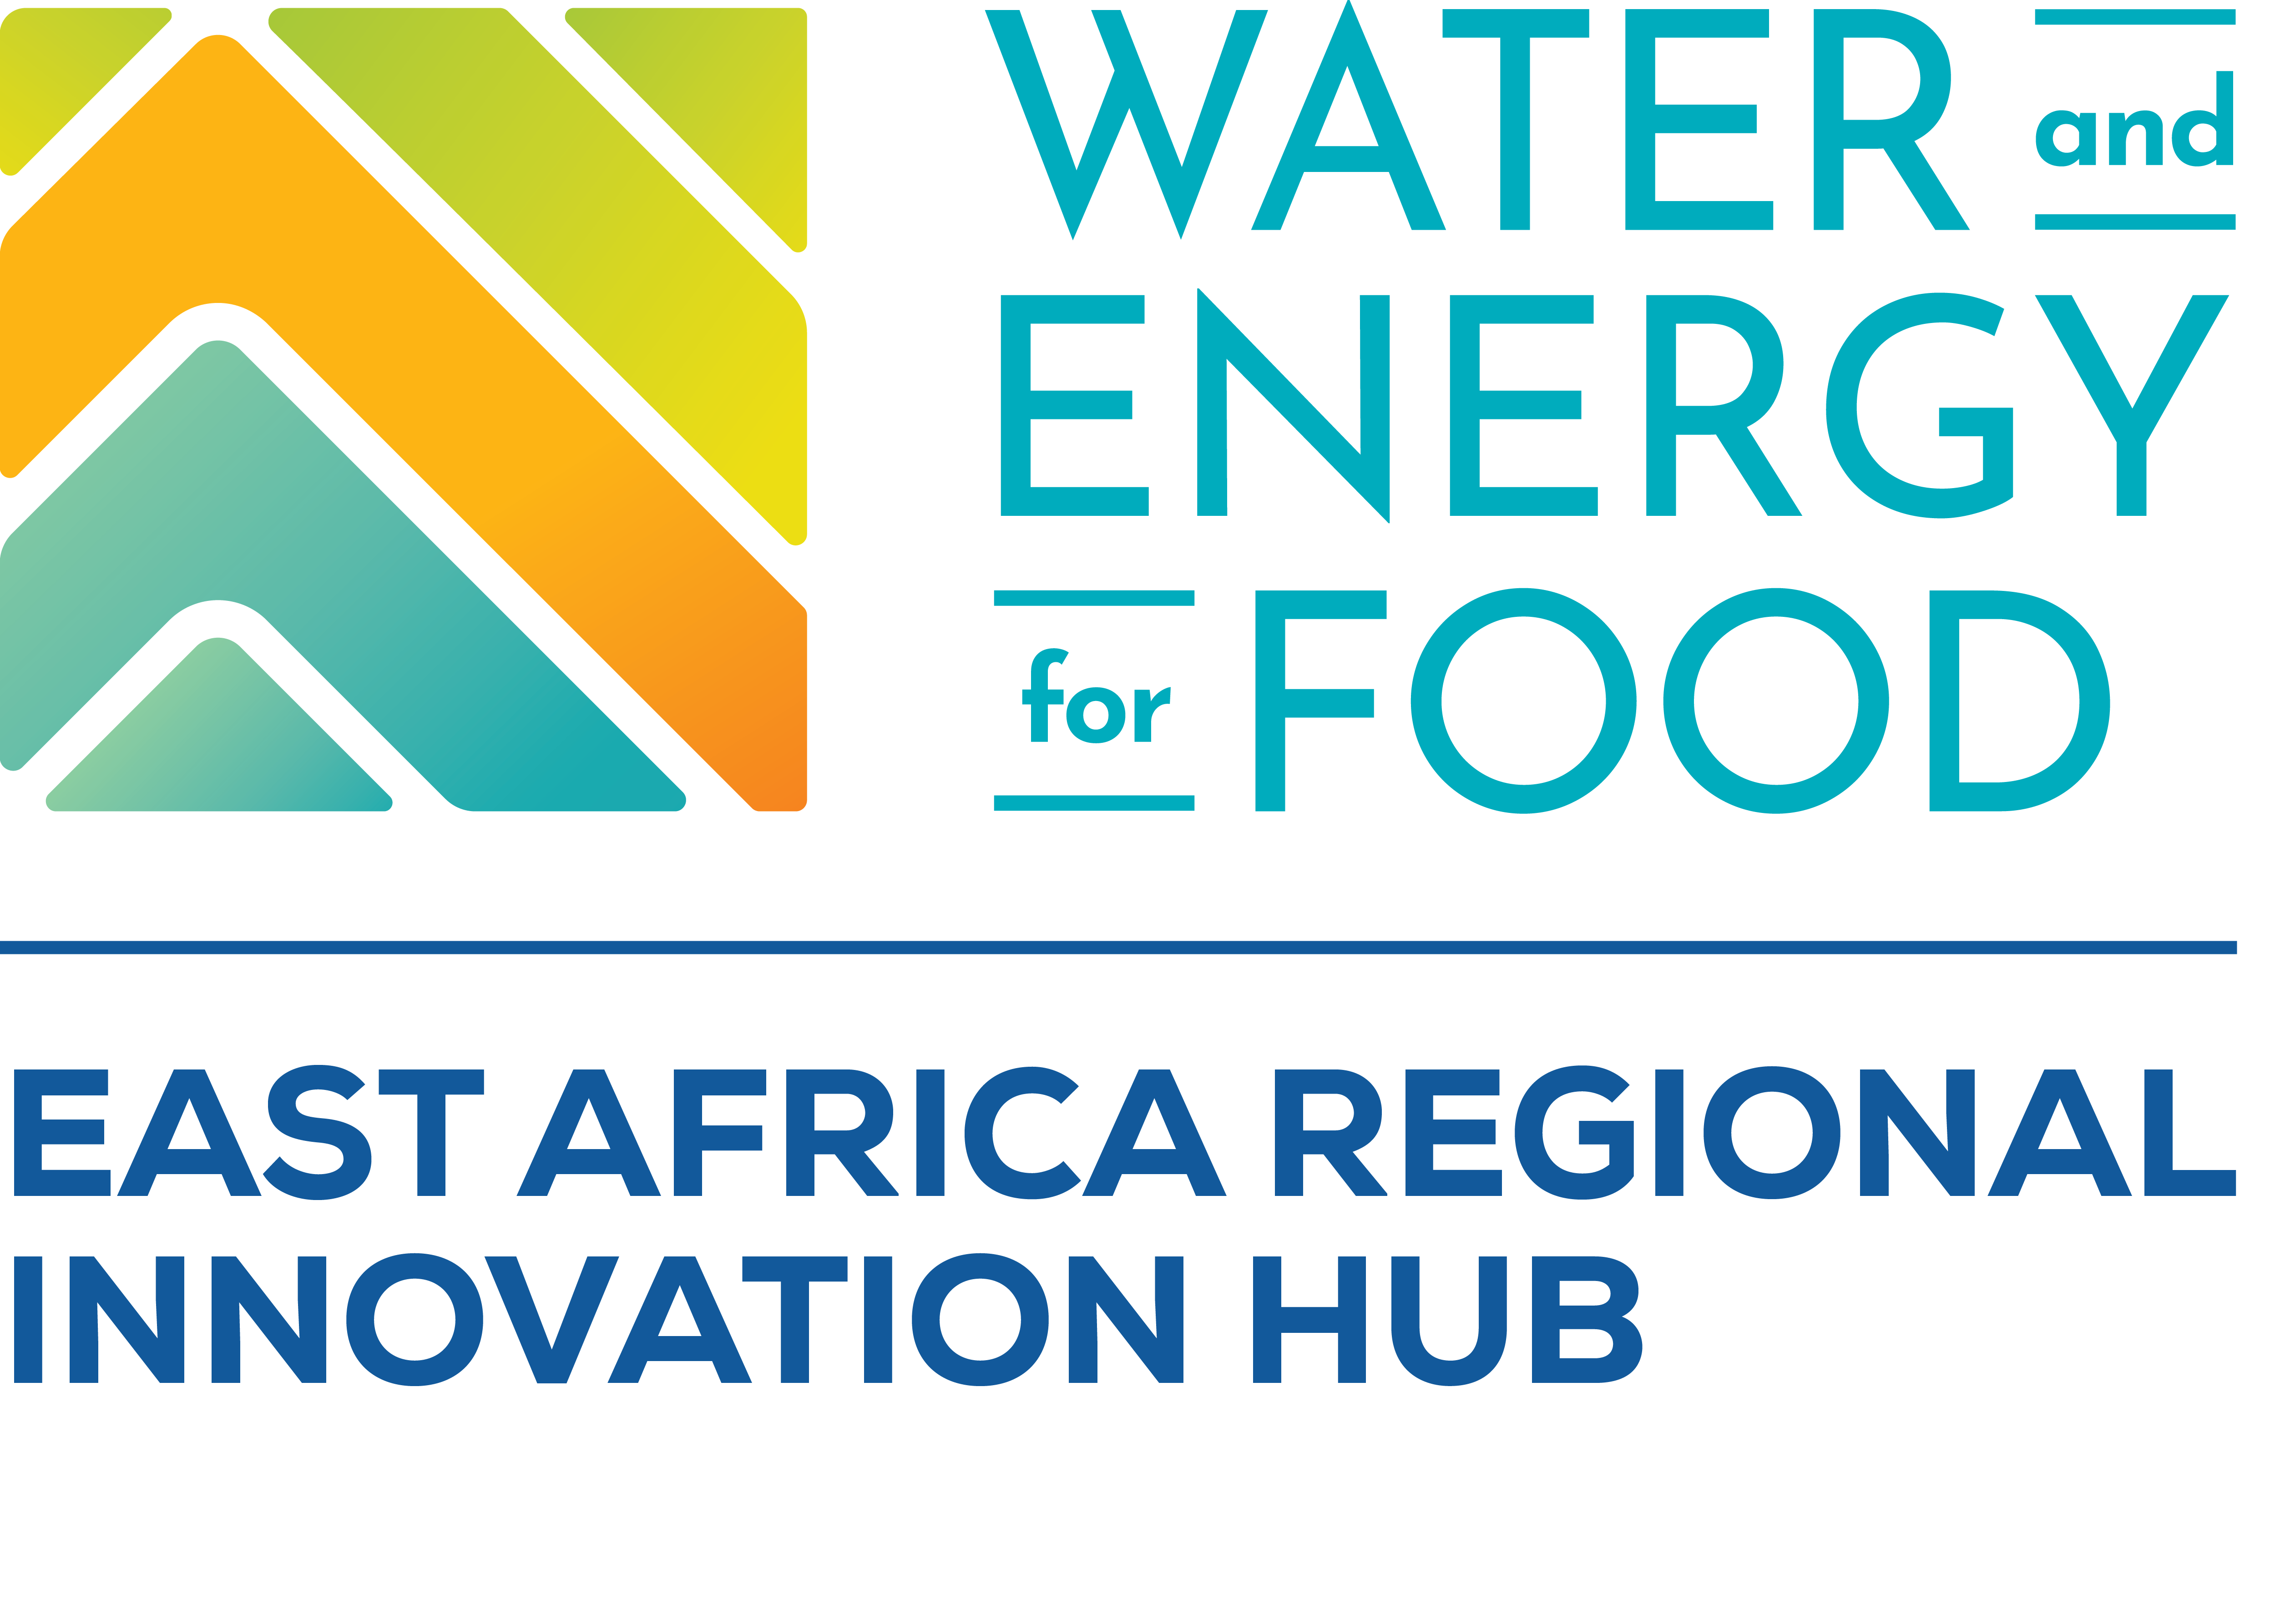 East Africa Hub - Water and Energy For Food